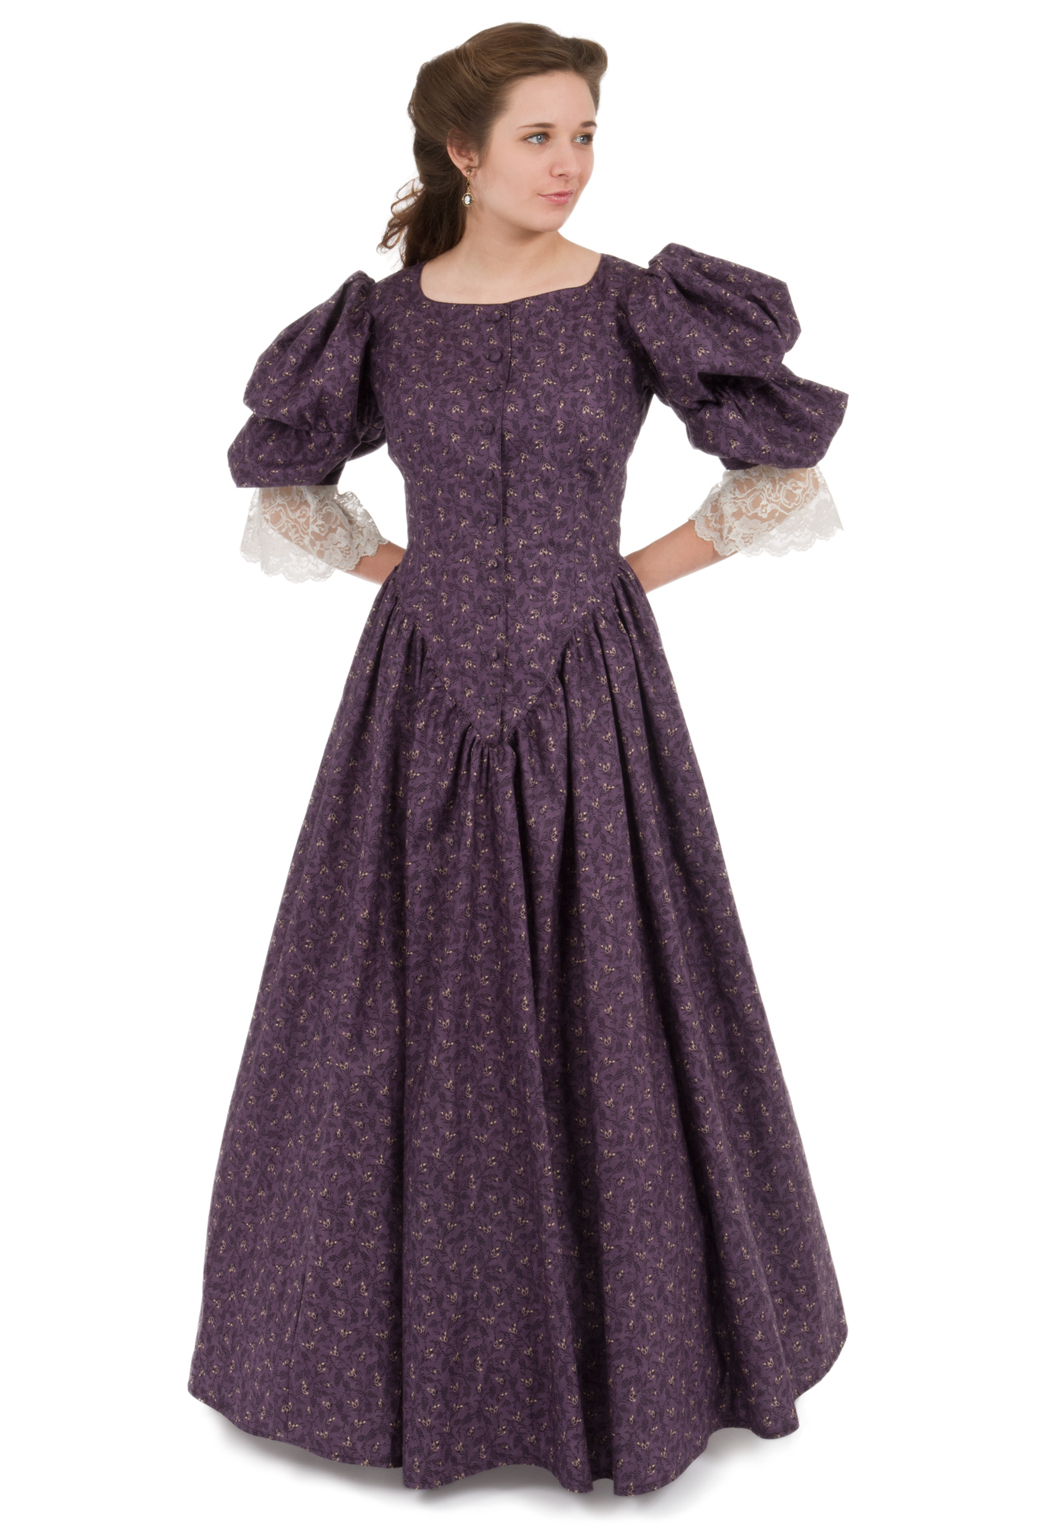 Aileen Victorian Dress | Recollections